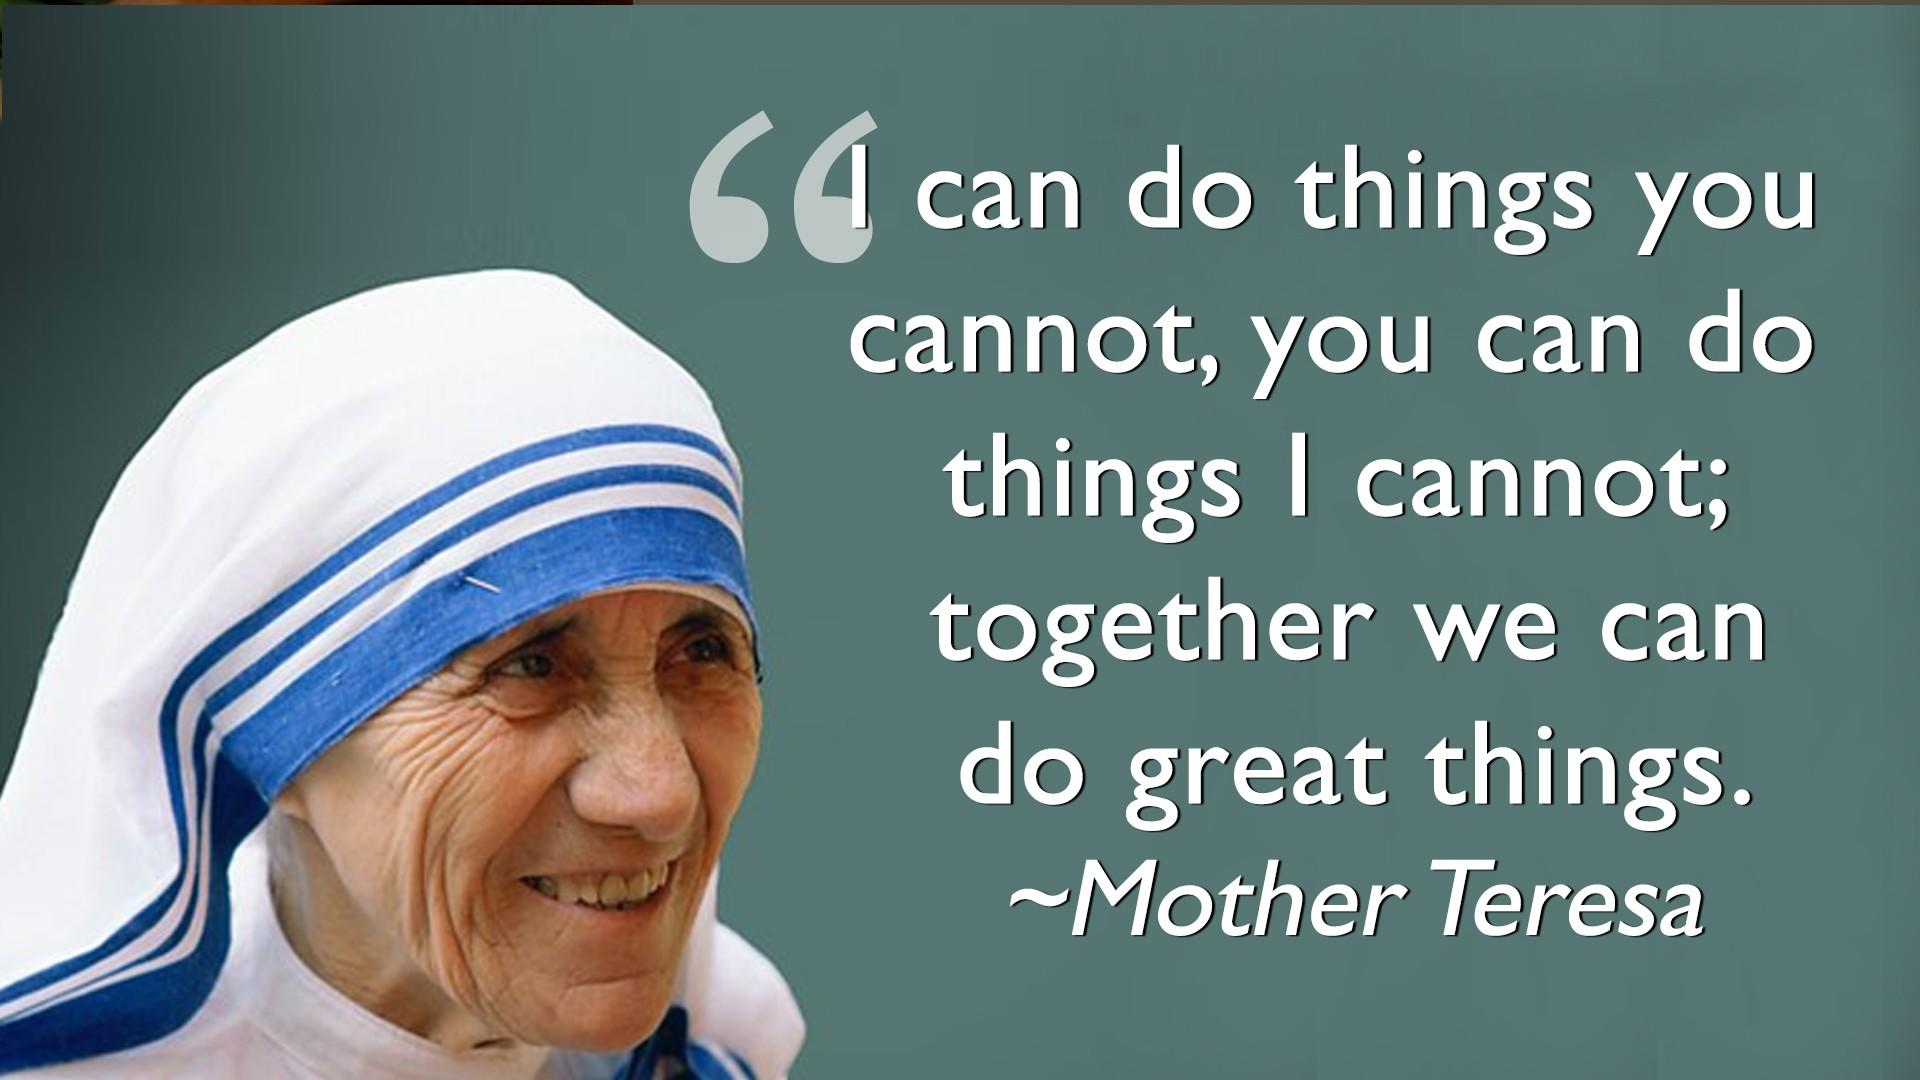 Mother Teresa Quote - I can do things you cannot, you can do things I cannot; together we can do great things.